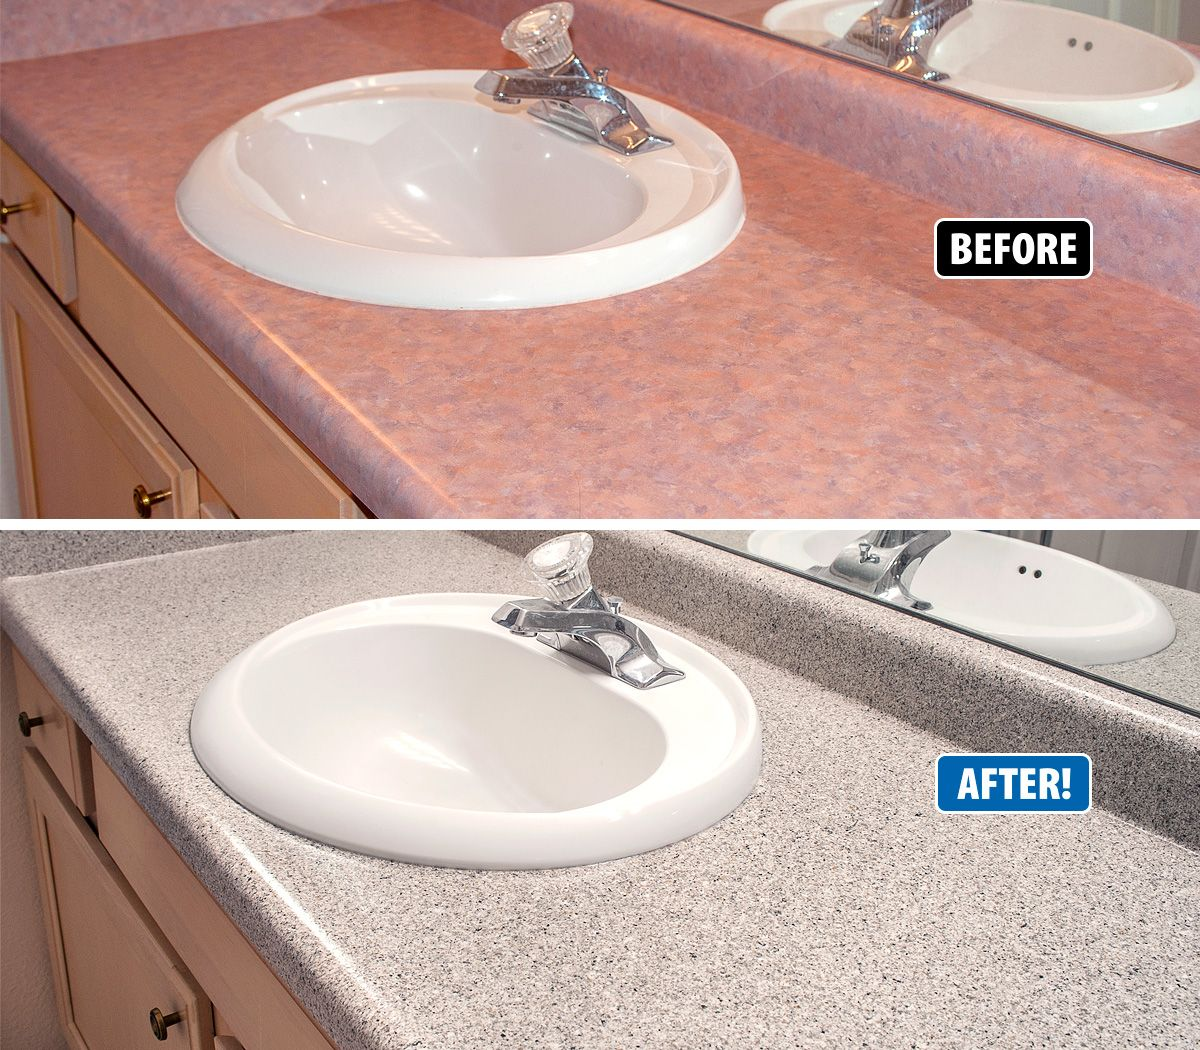 Outdated Vanities Can Be Refinished With A Complete Transformation